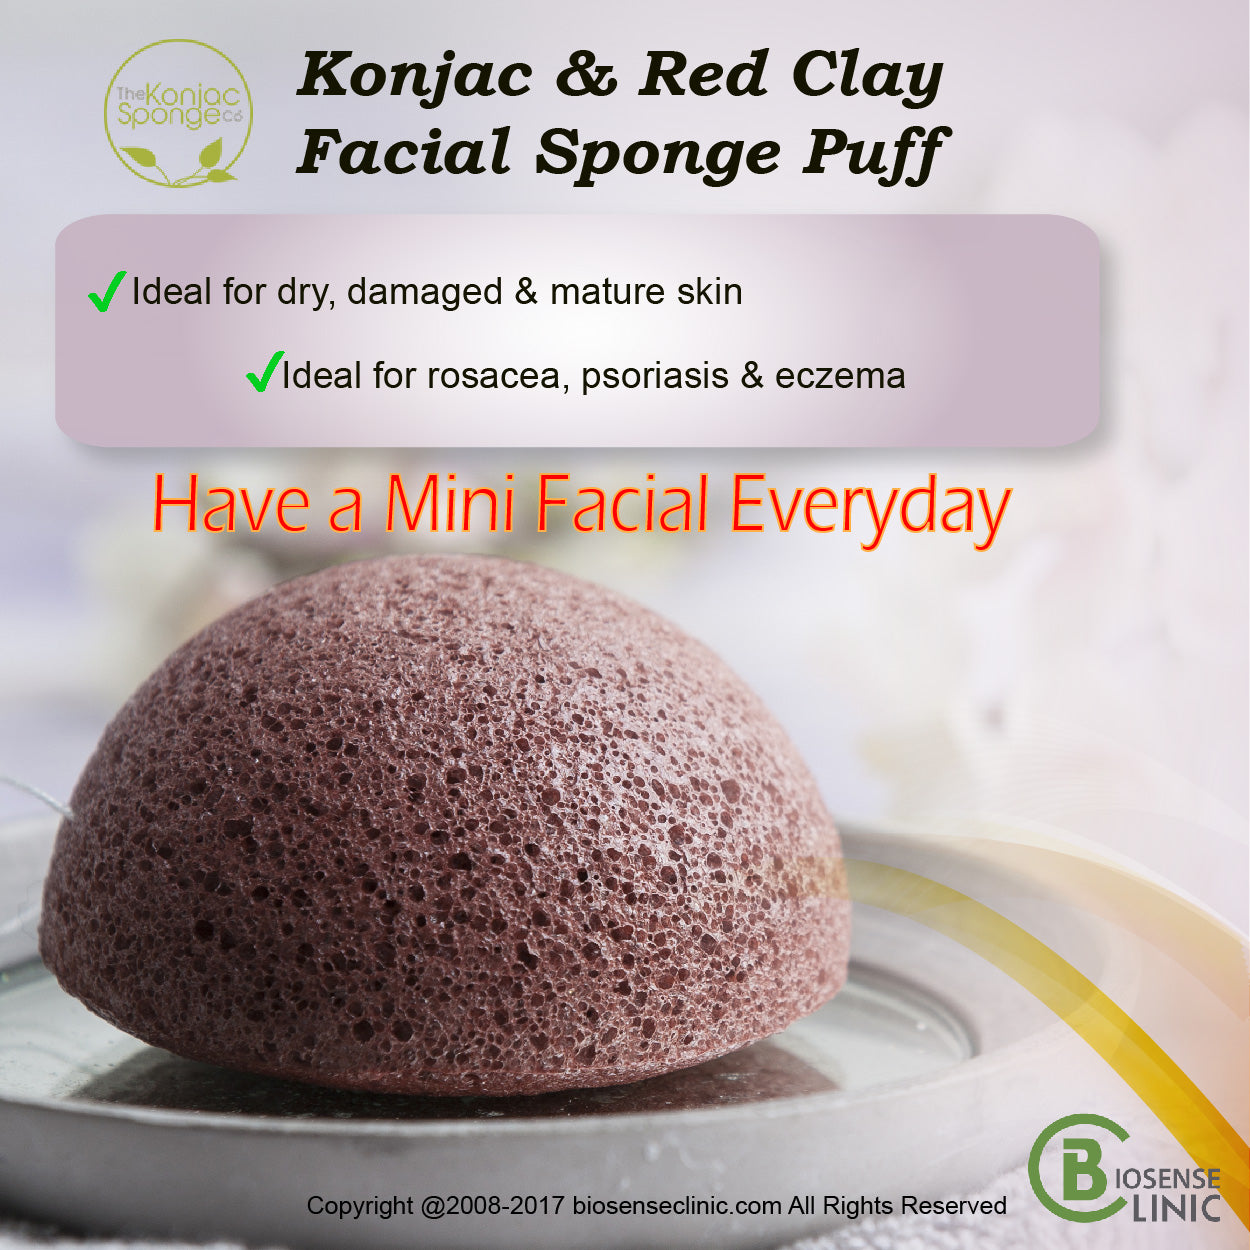 Konjac & Red Clay Facial Sponge Puff mobile banner